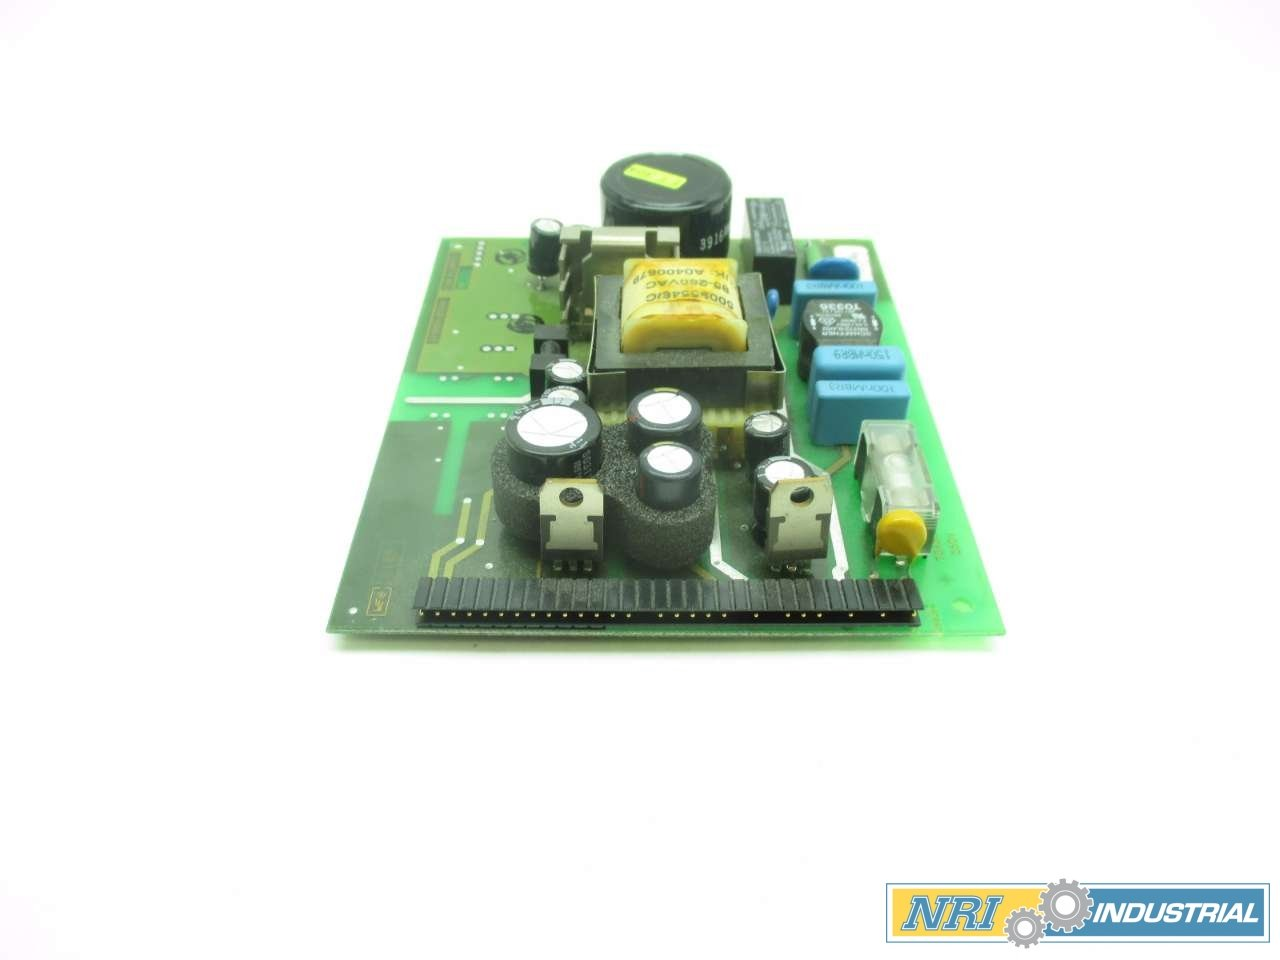 Endress Hauser 319084 0200c Flowtec T0a800 250v Ac Pcb Circuit Board In A Ssr The Is Not Everything Engineering D572154 Industrial Scientific